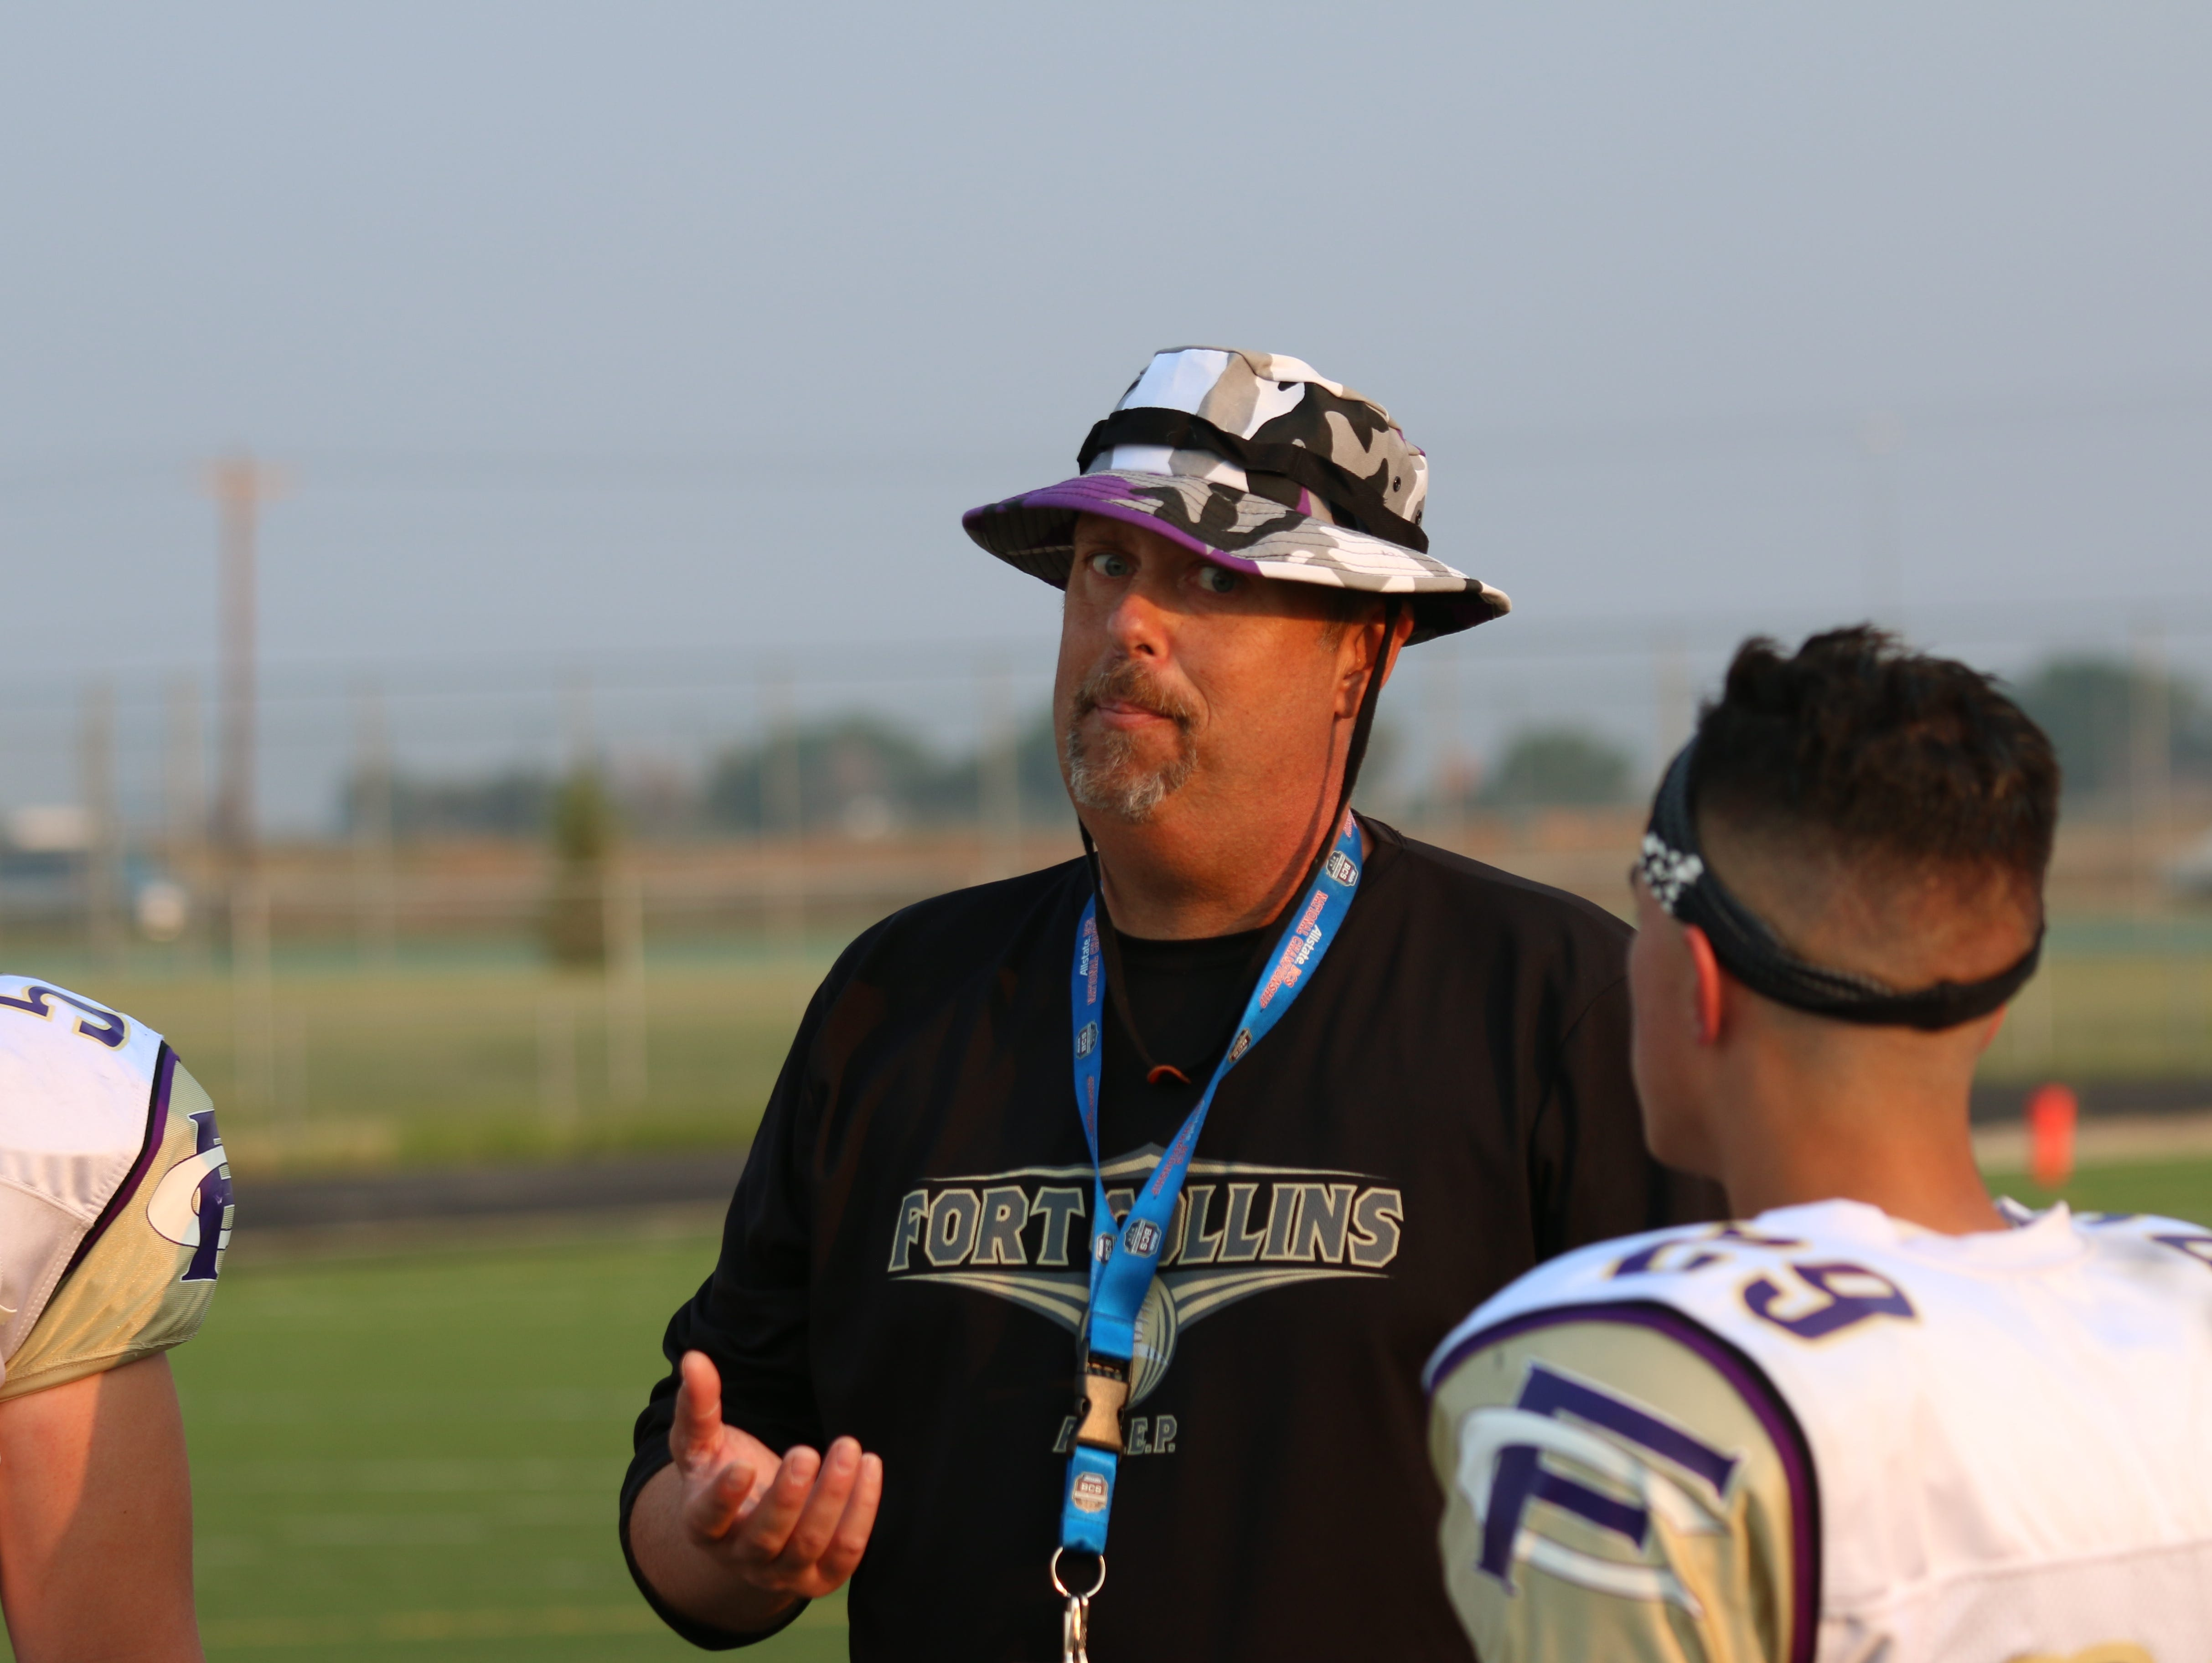 Fort Collins High School assistant football coach Greg Mount died from cancer last week.